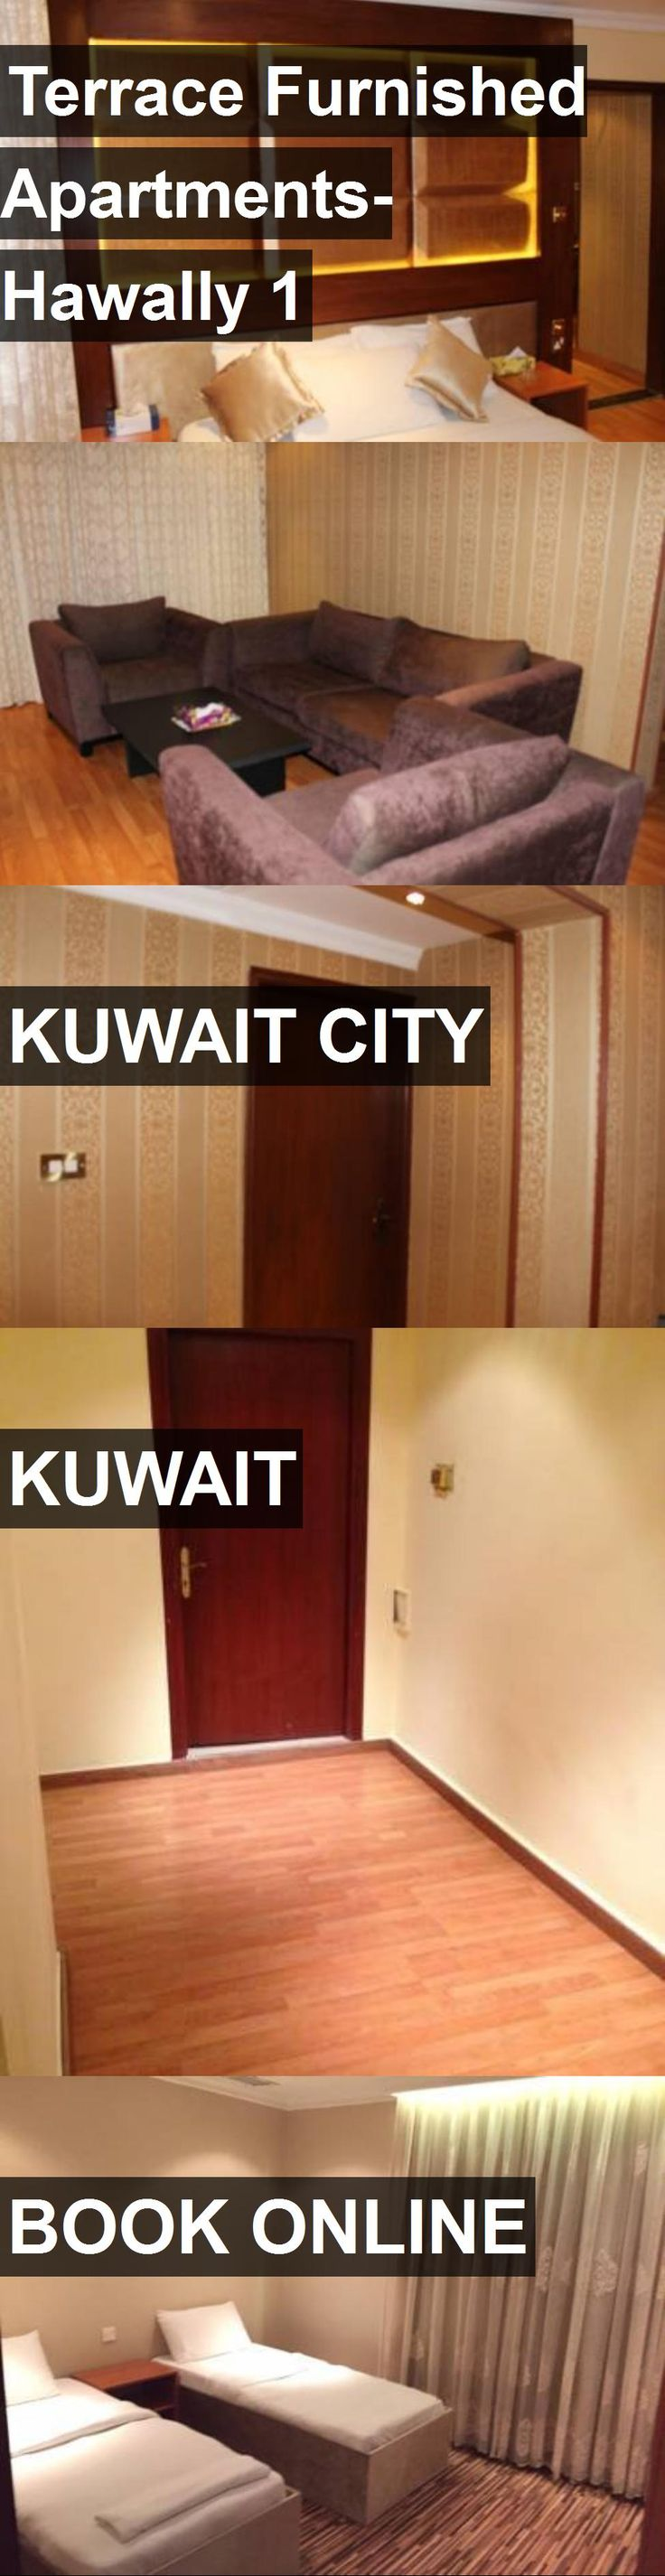 Terrace Furnished Apartments- Hawally 1 in Kuwait City, Kuwait. For more information, photos, reviews and best prices please follow the link. #Kuwait #KuwaitCity #travel #vacation #apartment